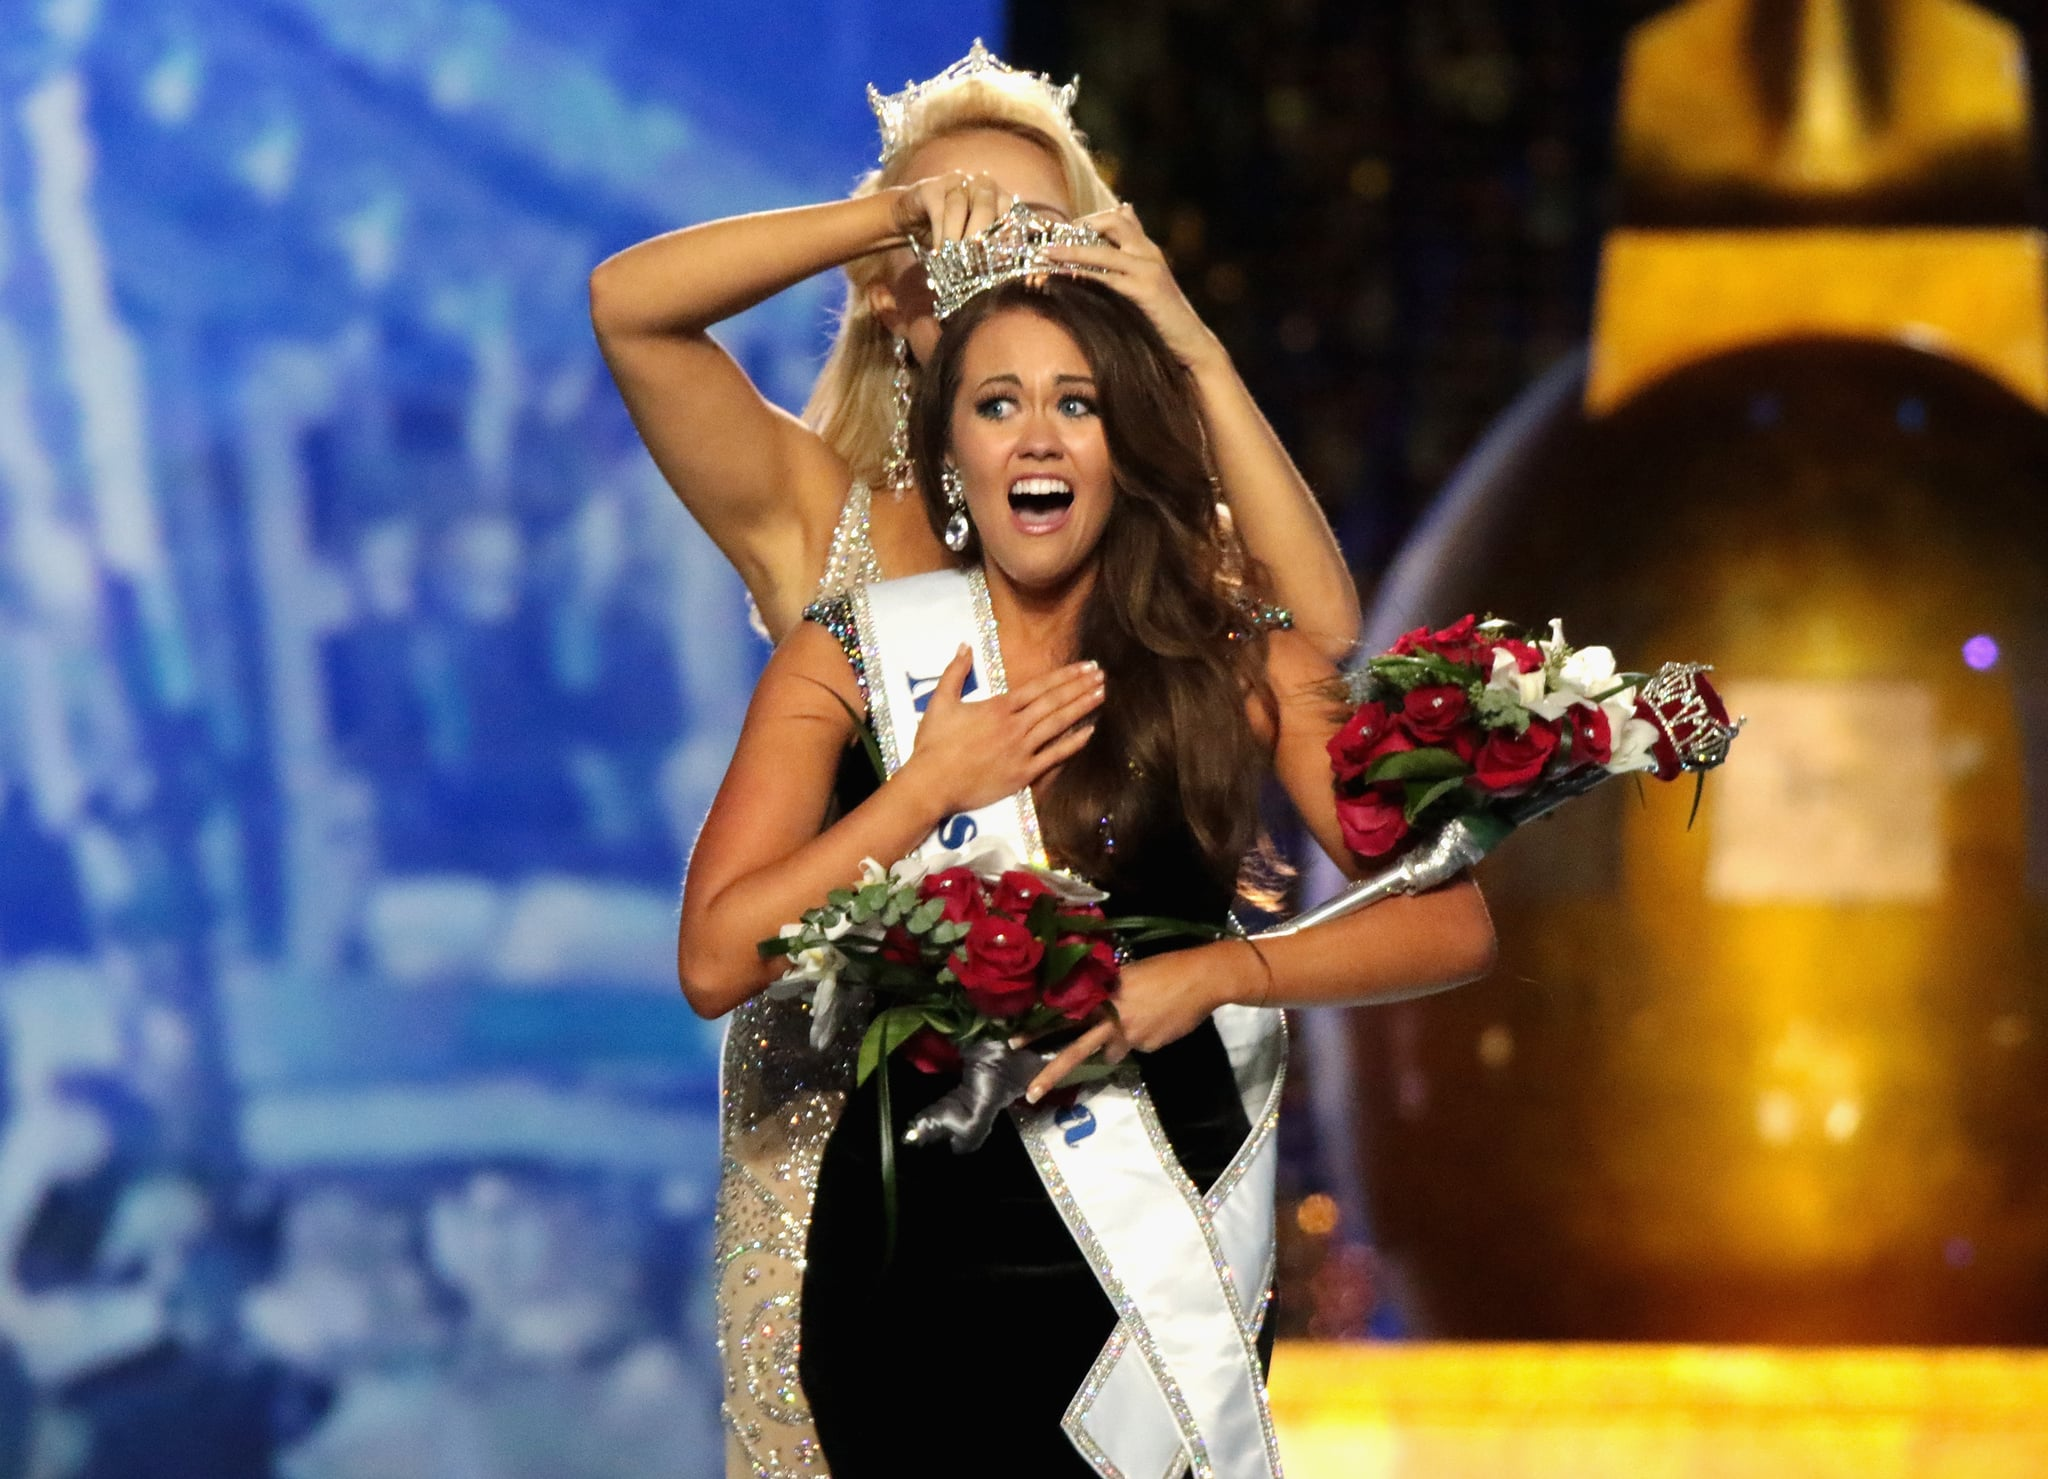 ATLANTIC CITY, NJ - SEPTEMBER 10:  Miss North Dakota 2017 Cara Mund is crowned as Miss America 2018 by Miss America 2017 Savvy Shields during the 2018 Miss America Competition Show at Boardwalk Hall Arena on September 10, 2017 in Atlantic City, New Jersey.  (Photo by Donald Kravitz/Getty Images for Dick Clark Productions)